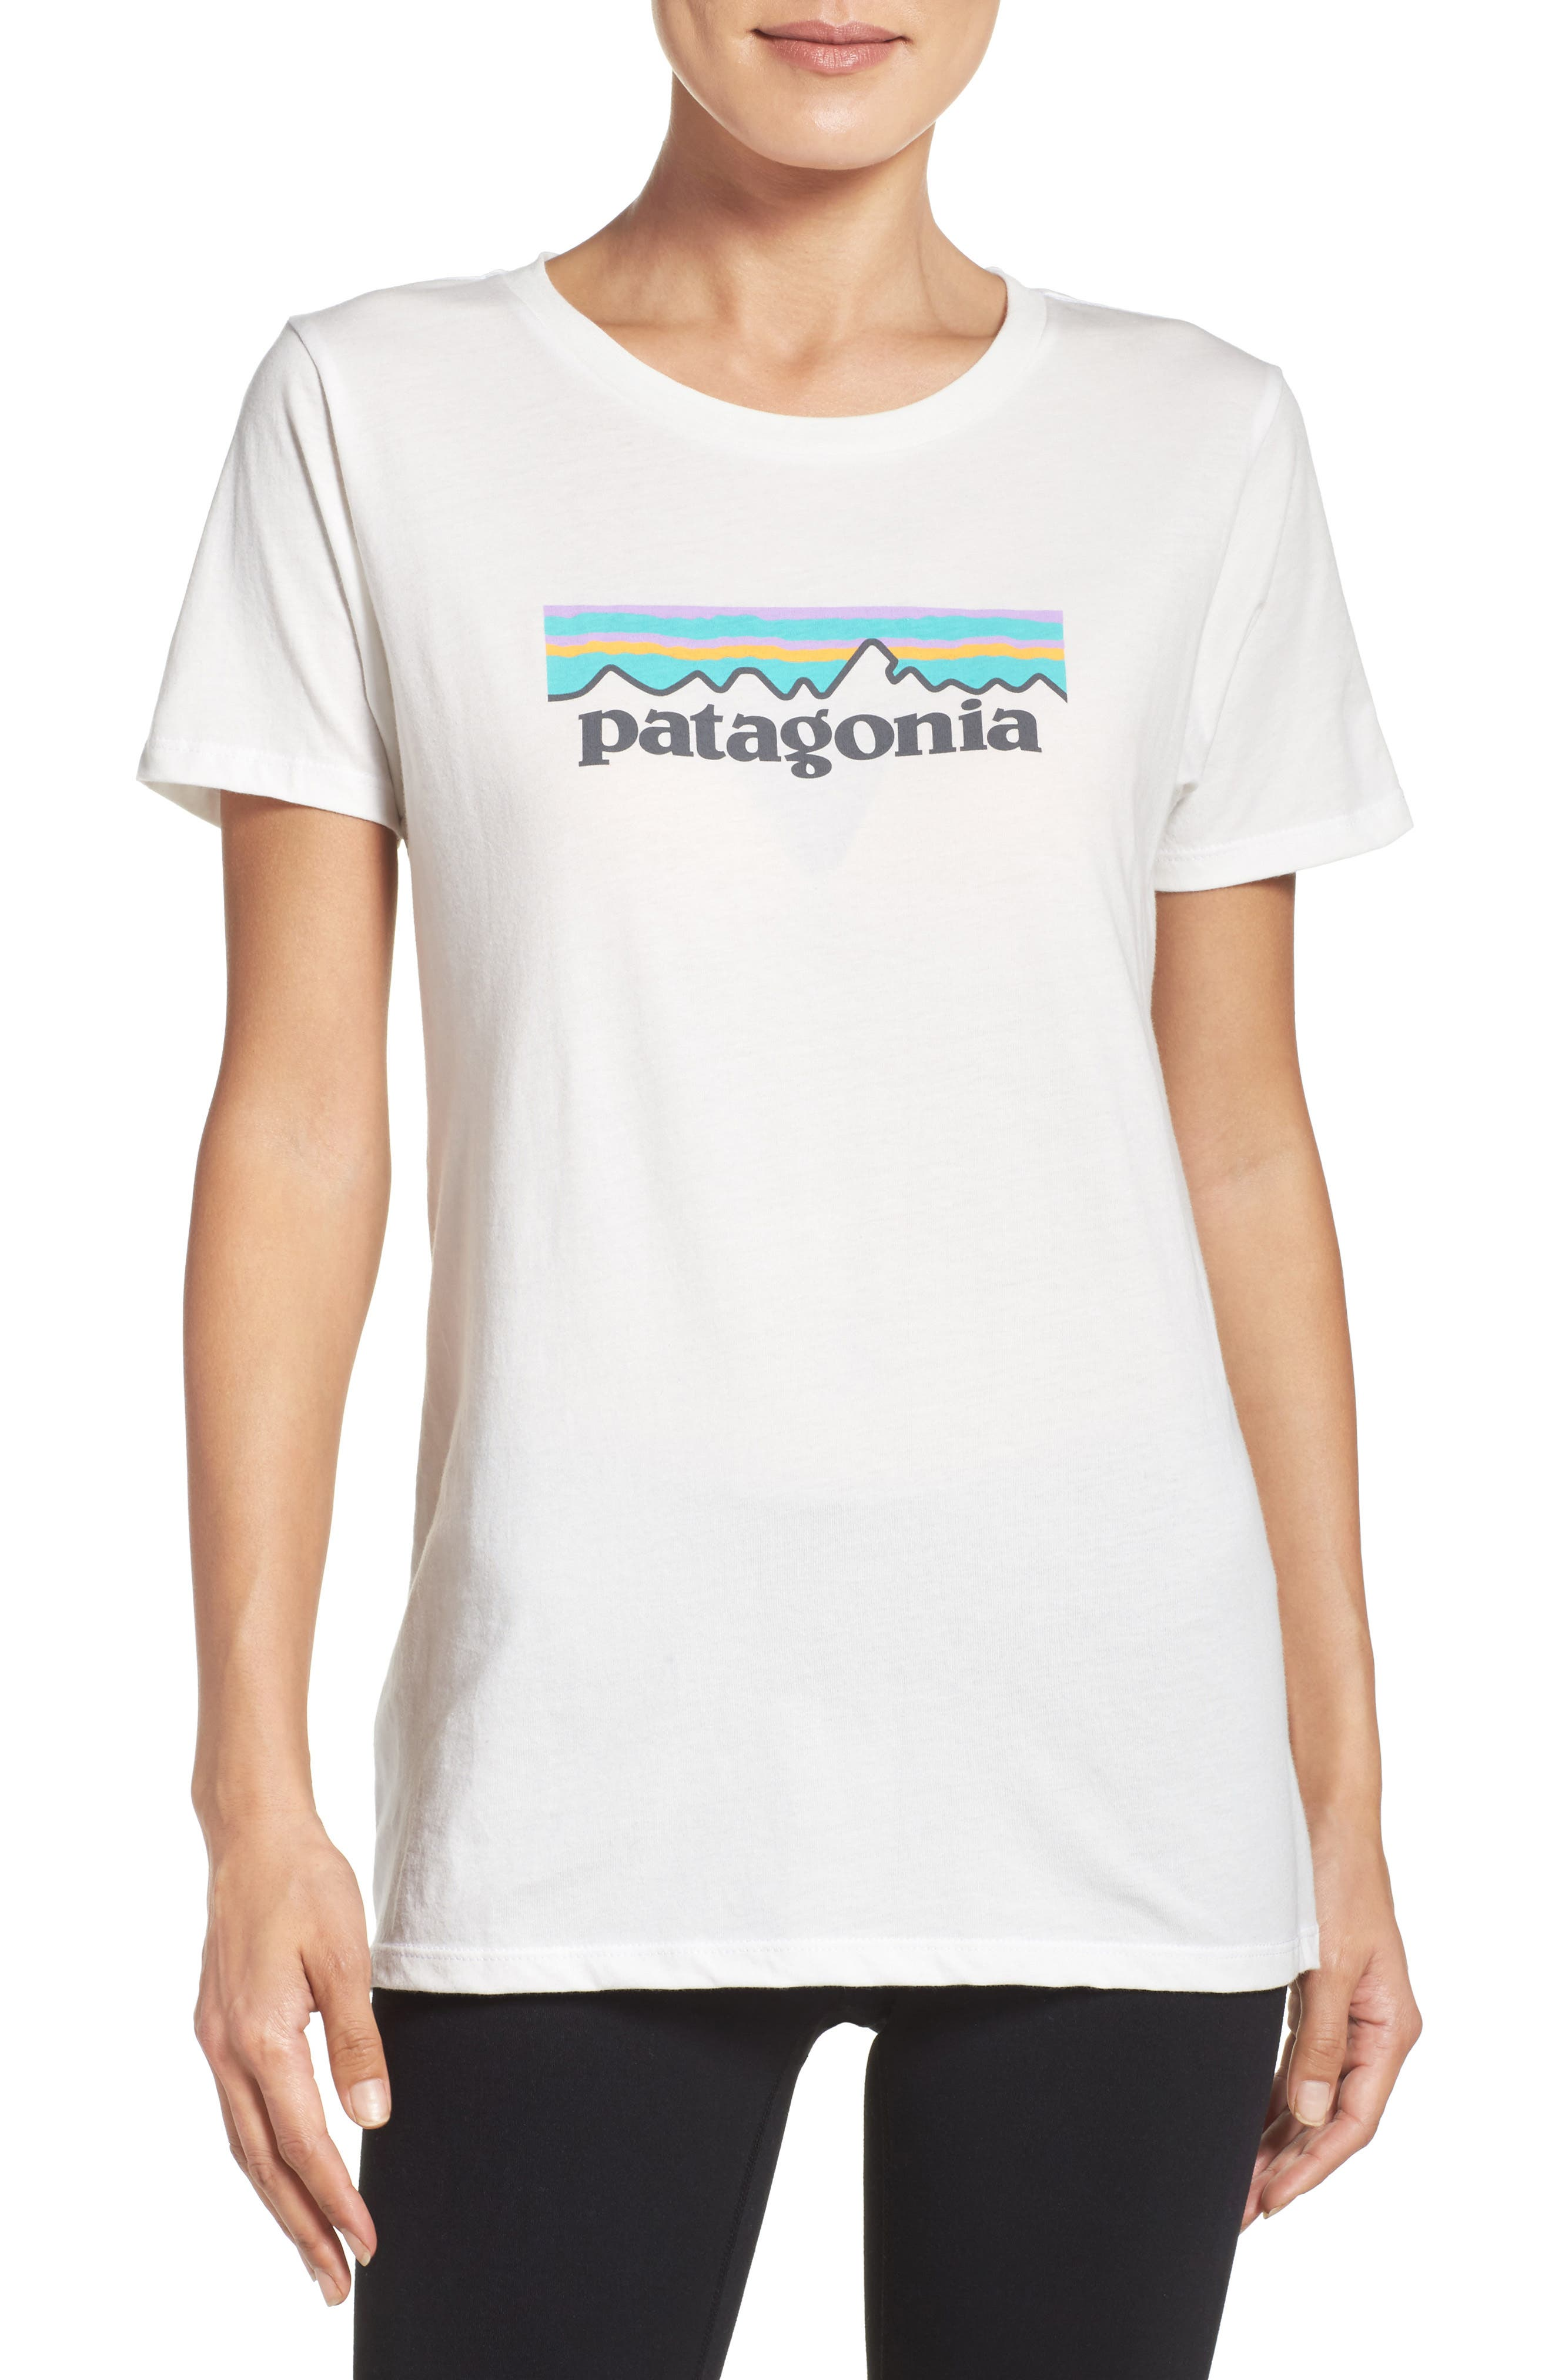 P-6 Organic Cotton Tee,                         Main,                         color, White